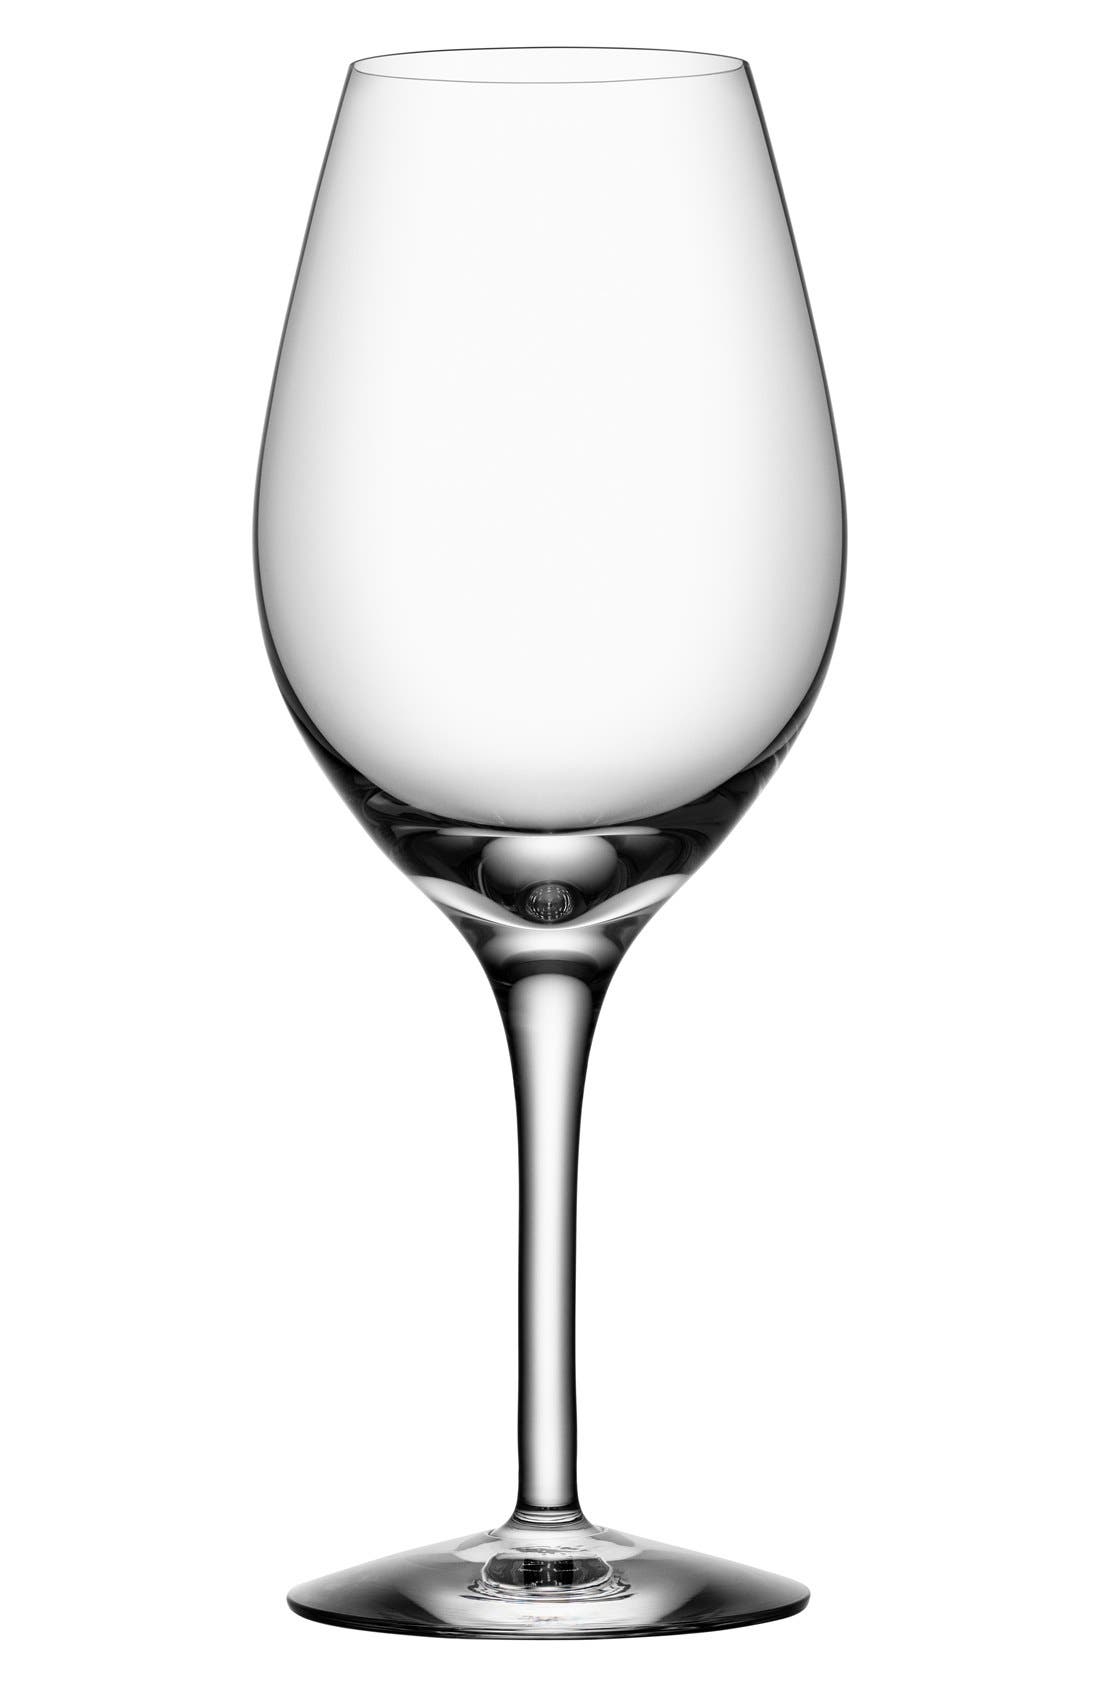 Alternate Image 1 Selected - Orrefors 'More' Wine Glasses (Set of 4)